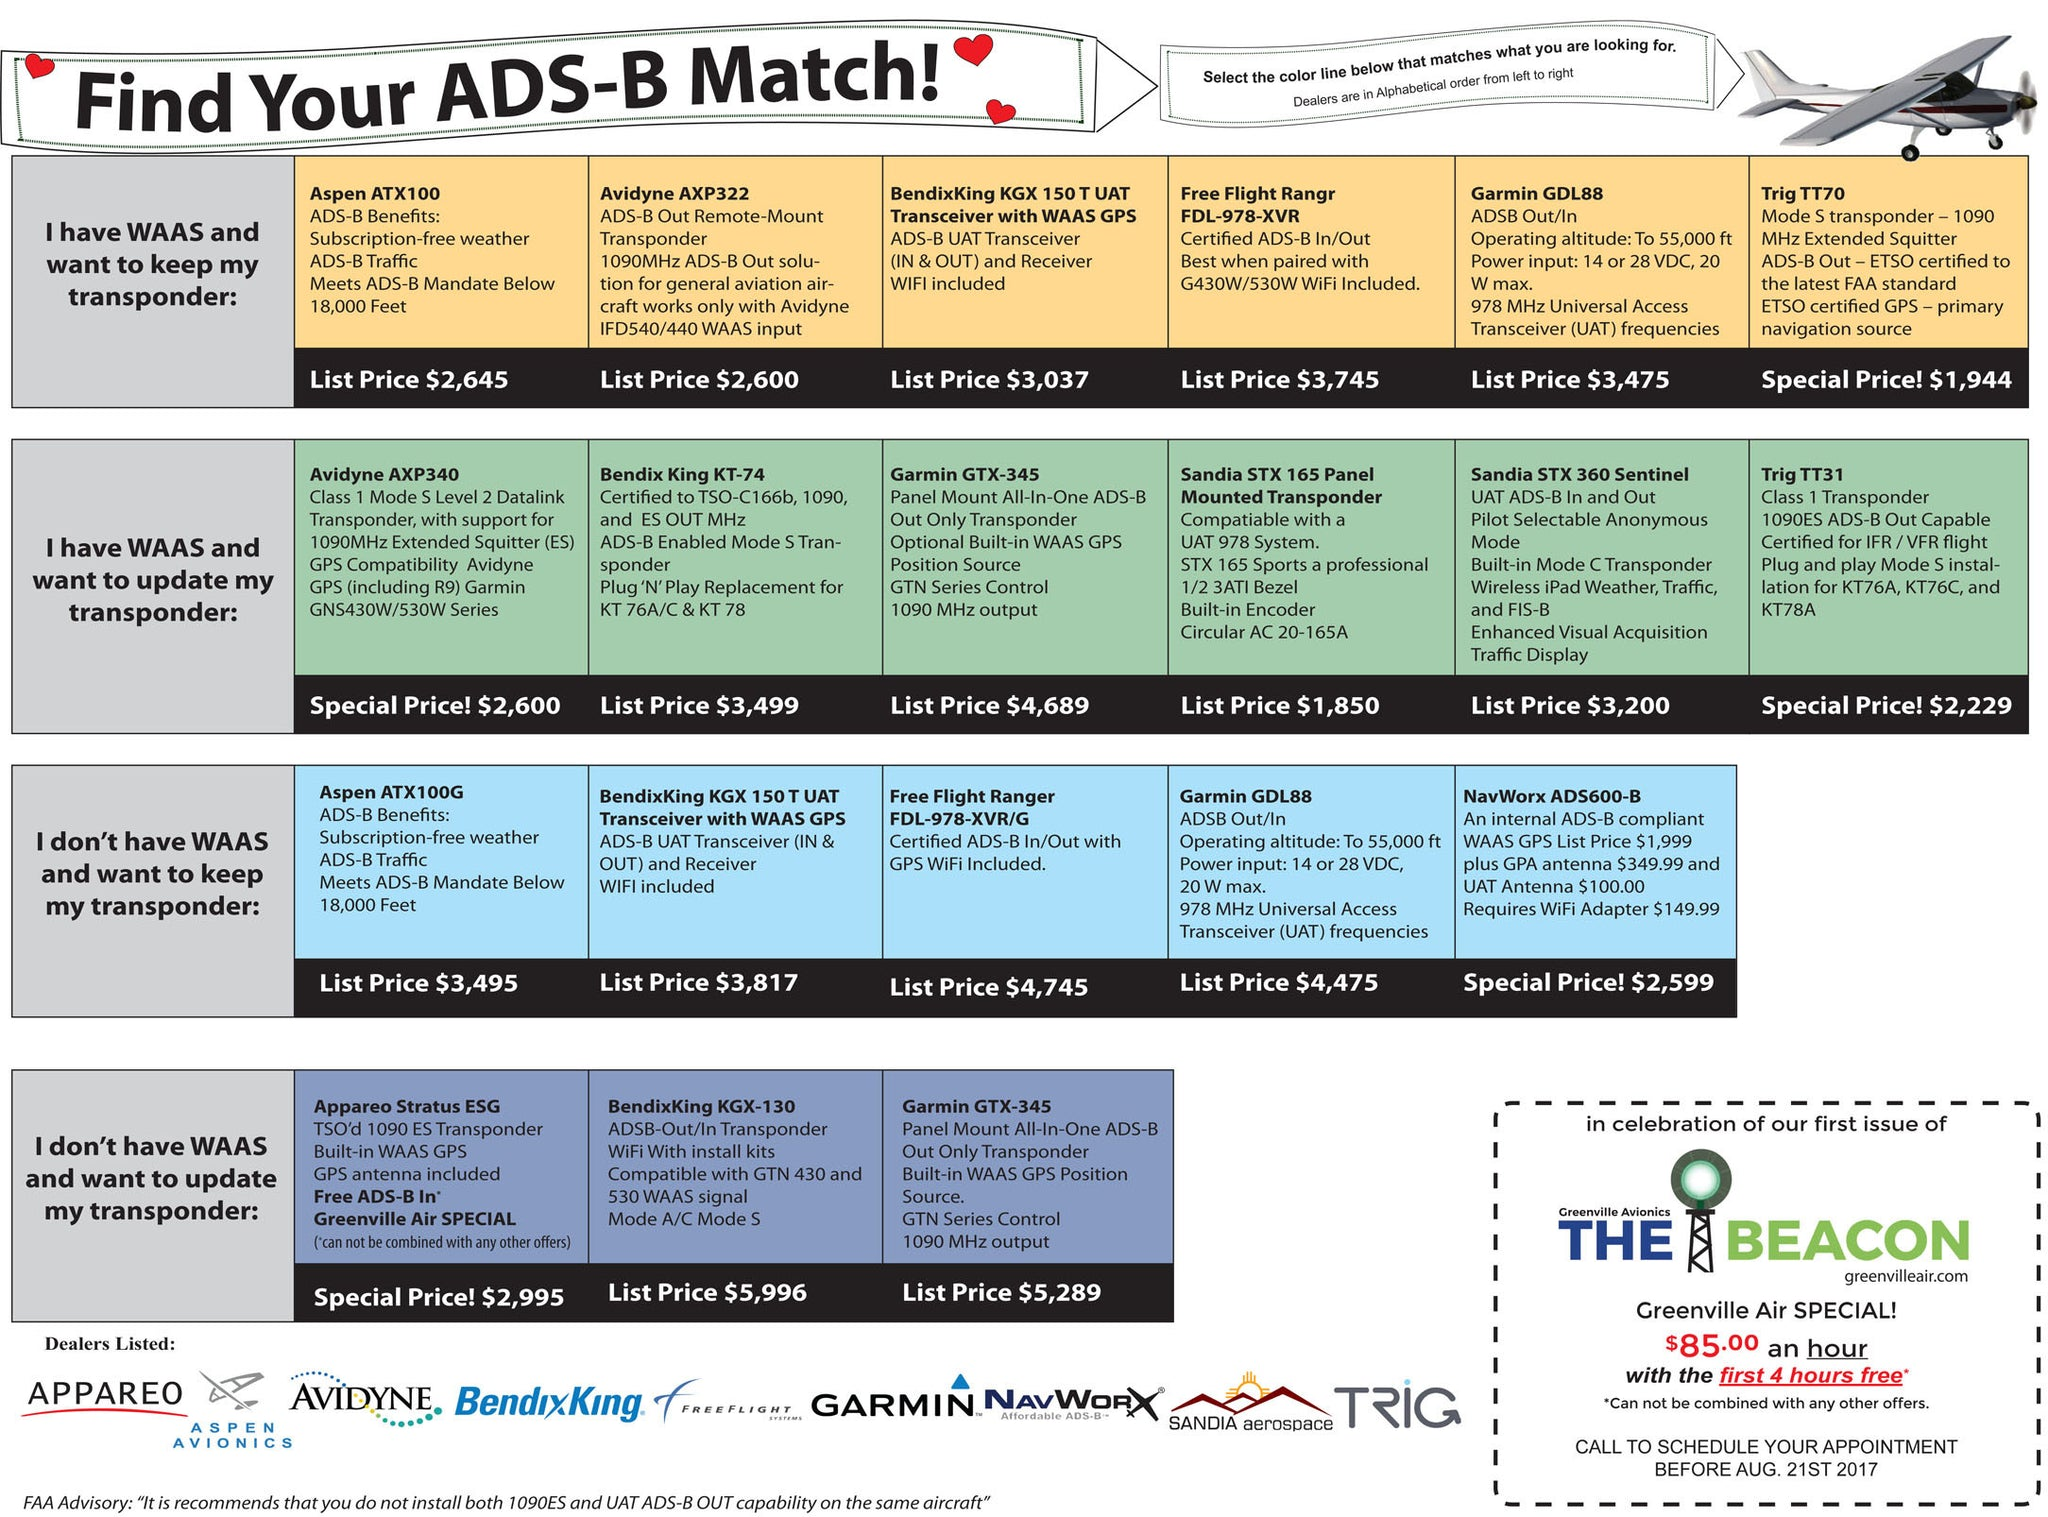 Find your ADS-B Match Greenville Air Chart